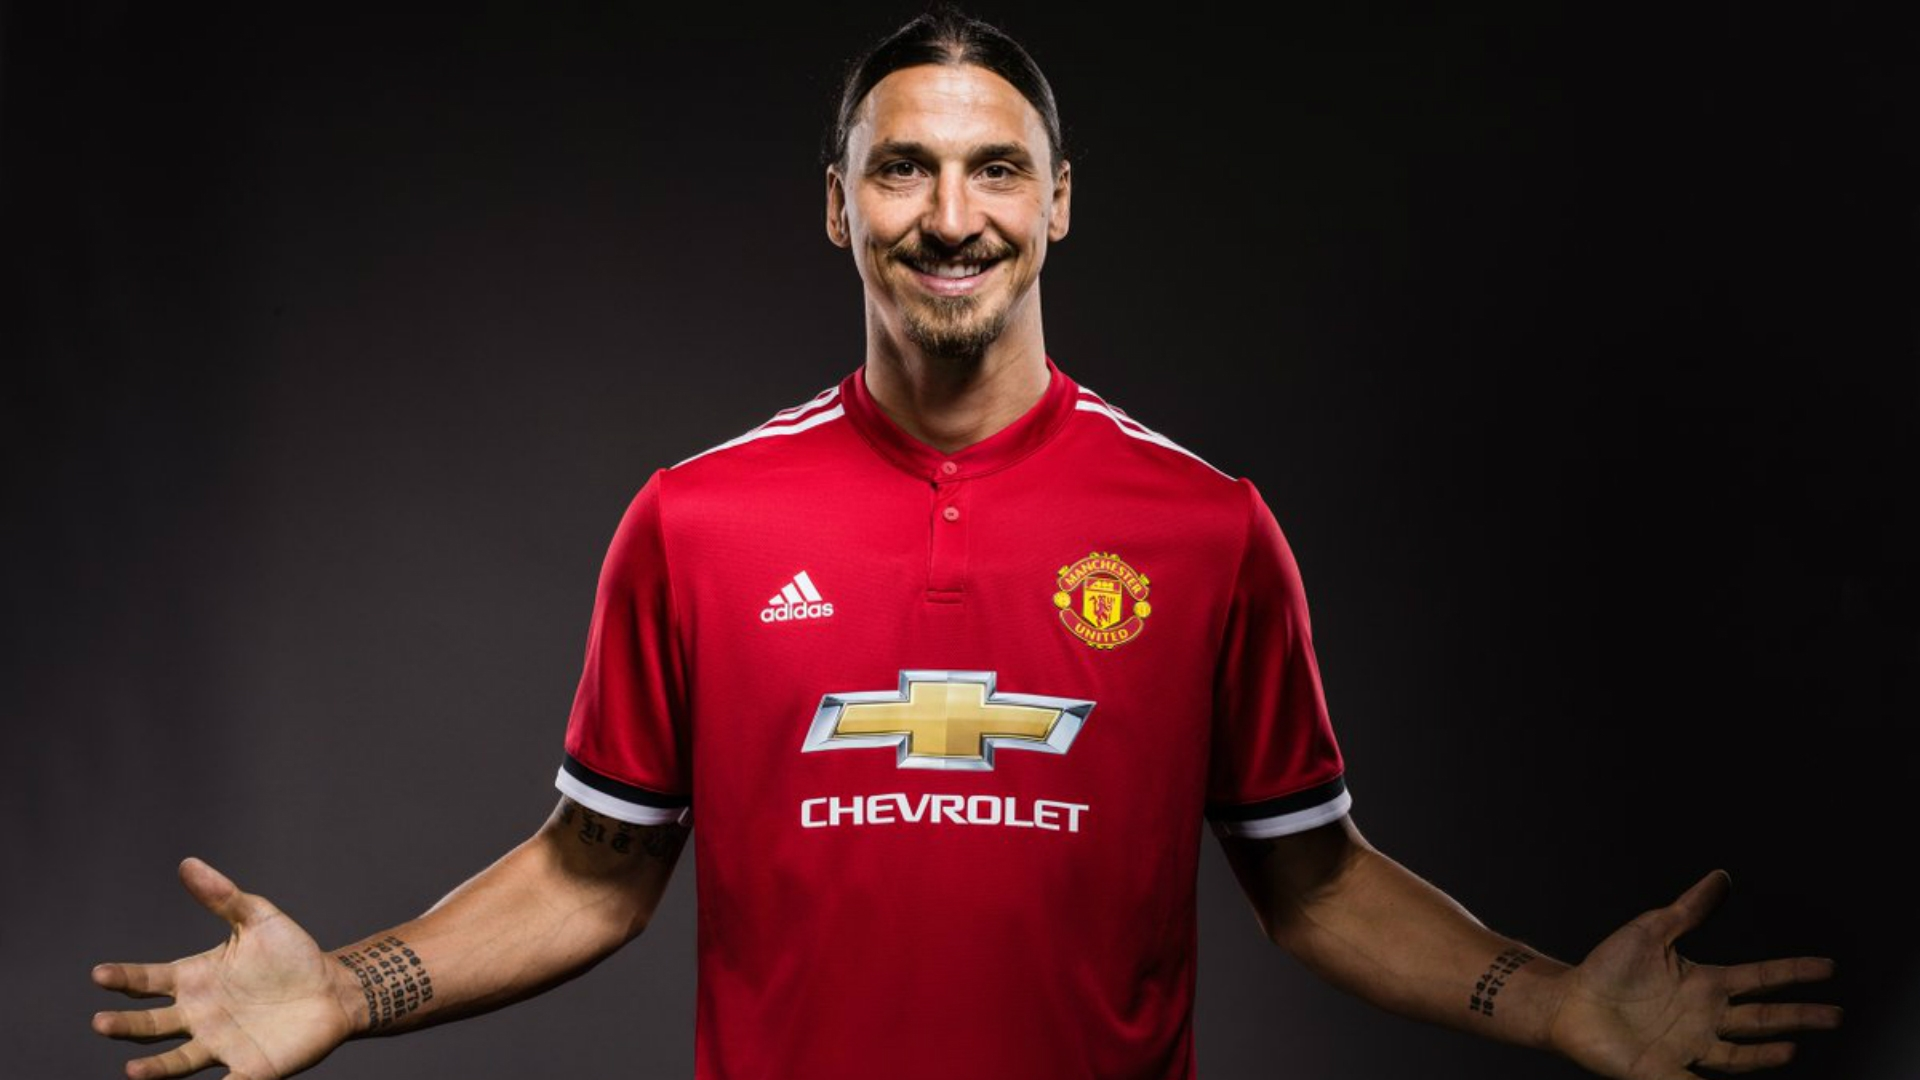 ibrahimovic - Man. Utd.'s new #10